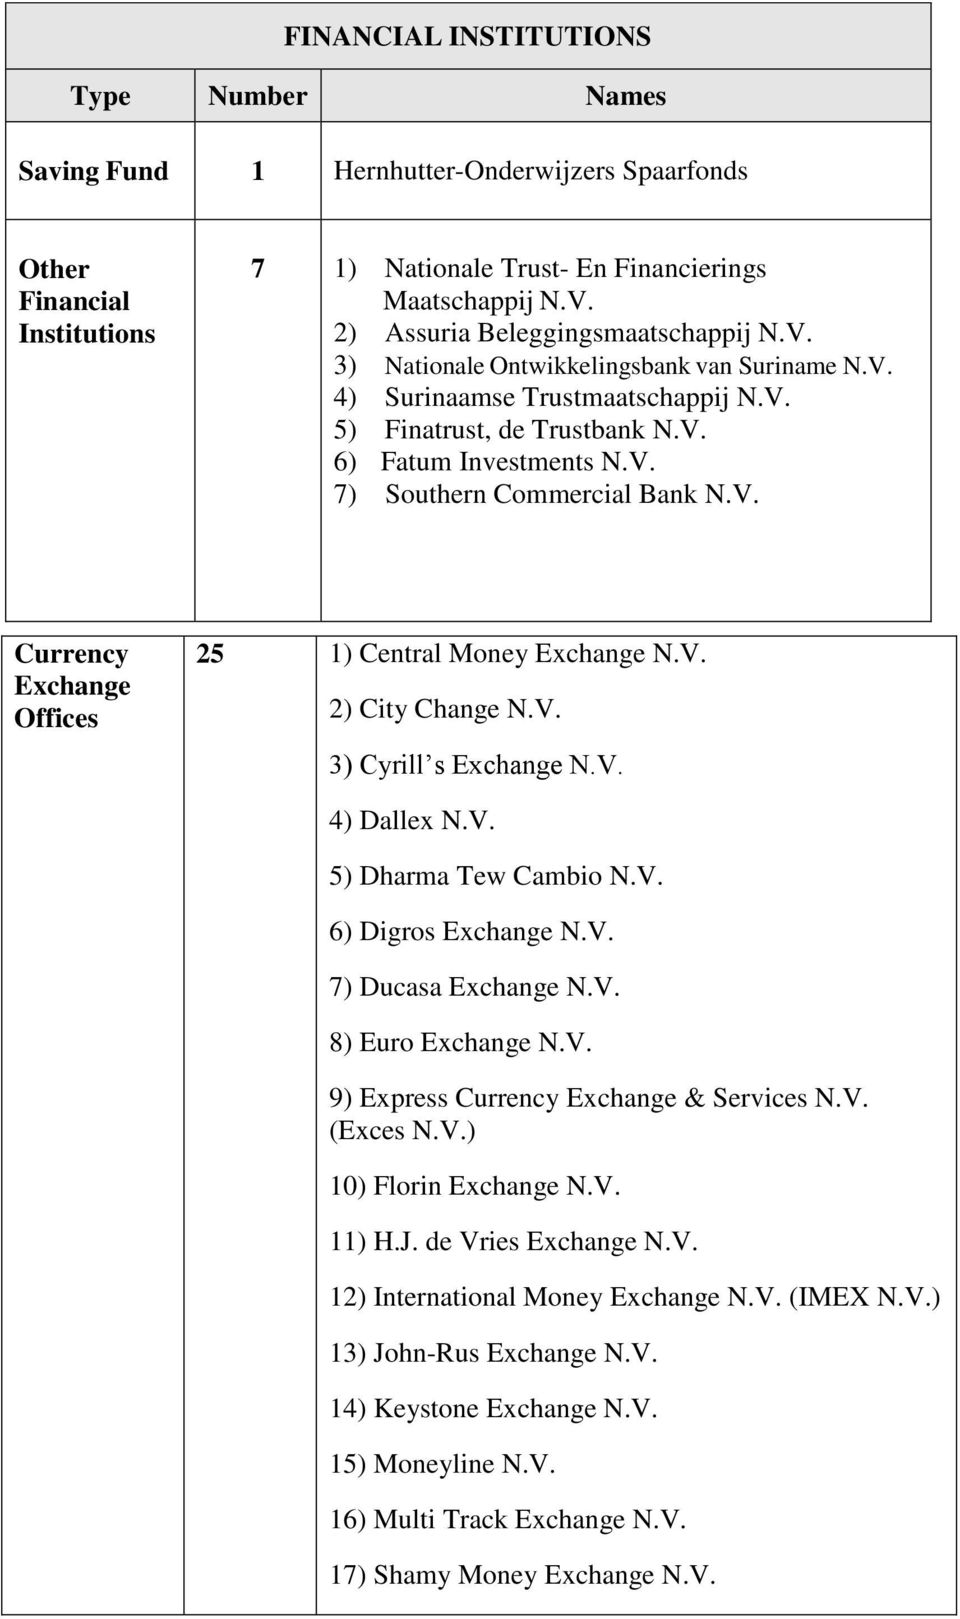 V. Currency Exchange Offices 25 1) Central Money Exchange N.V. 2) City Change N.V. 3) Cyrill s Exchange N.V. 4) Dallex N.V. 5) Dharma Tew Cambio N.V. 6) Digros Exchange N.V. 7) Ducasa Exchange N.V. 8) Euro Exchange N.